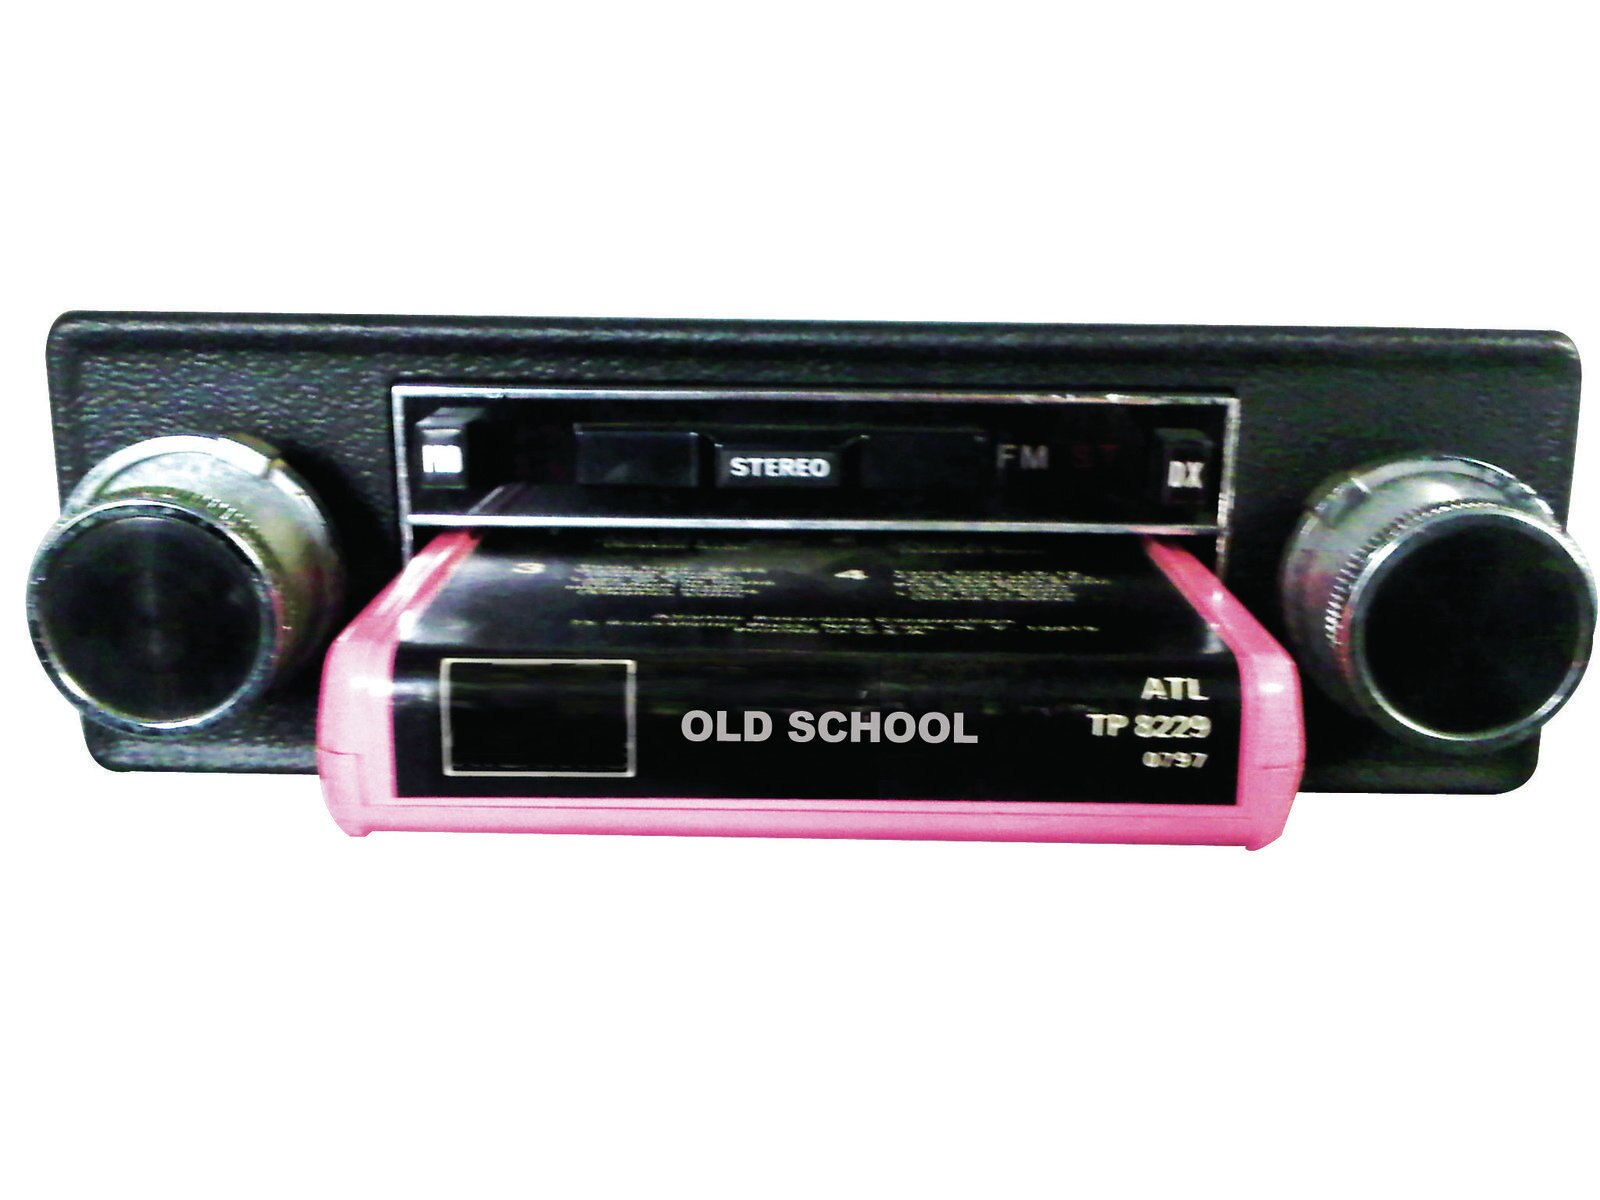 8 Track Players And Instagram - Lowrider Magazine